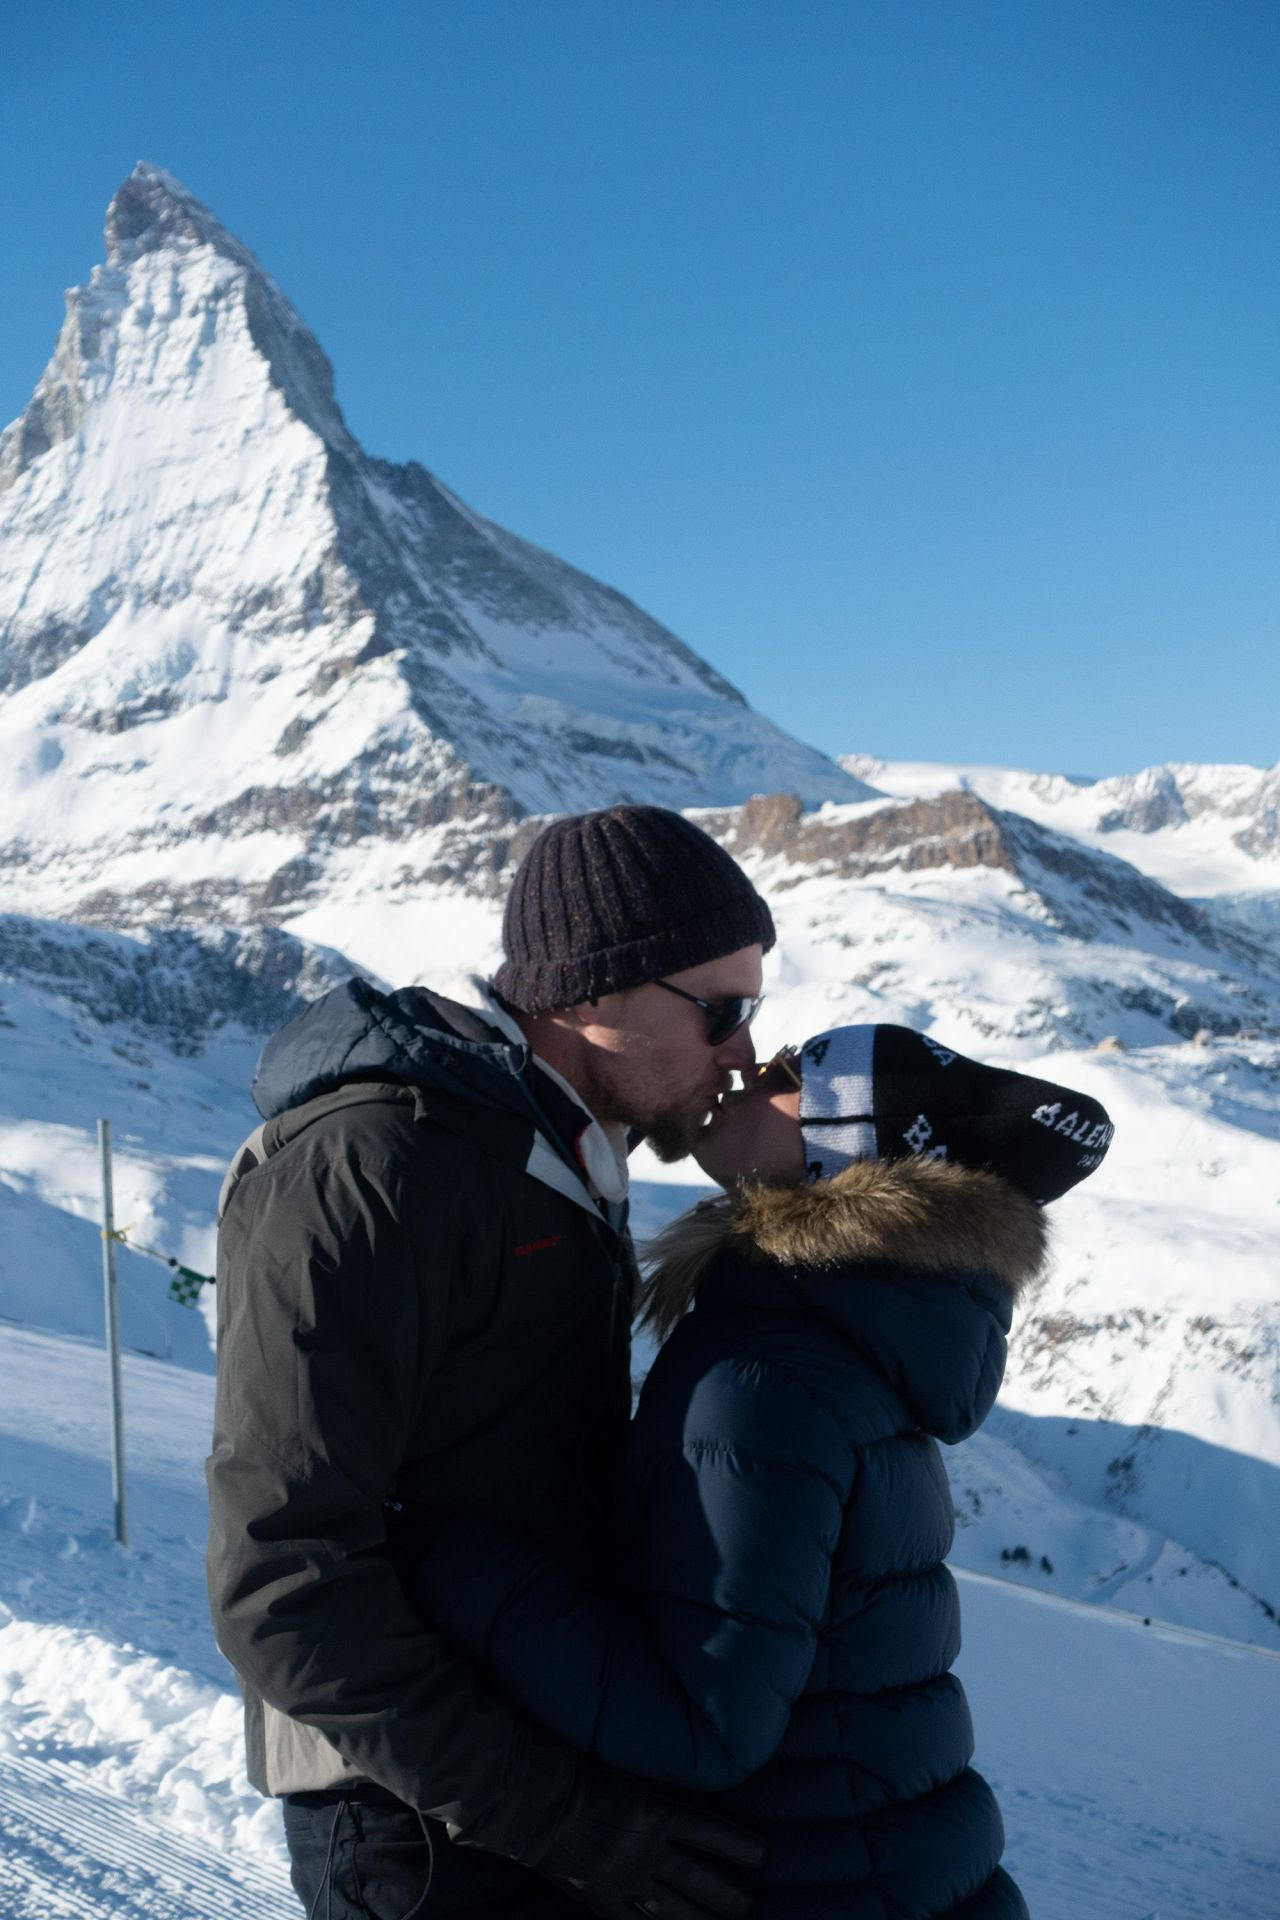 Kaley Cuoco On Her Honeymoon In Zermatt Switzerland 12 15